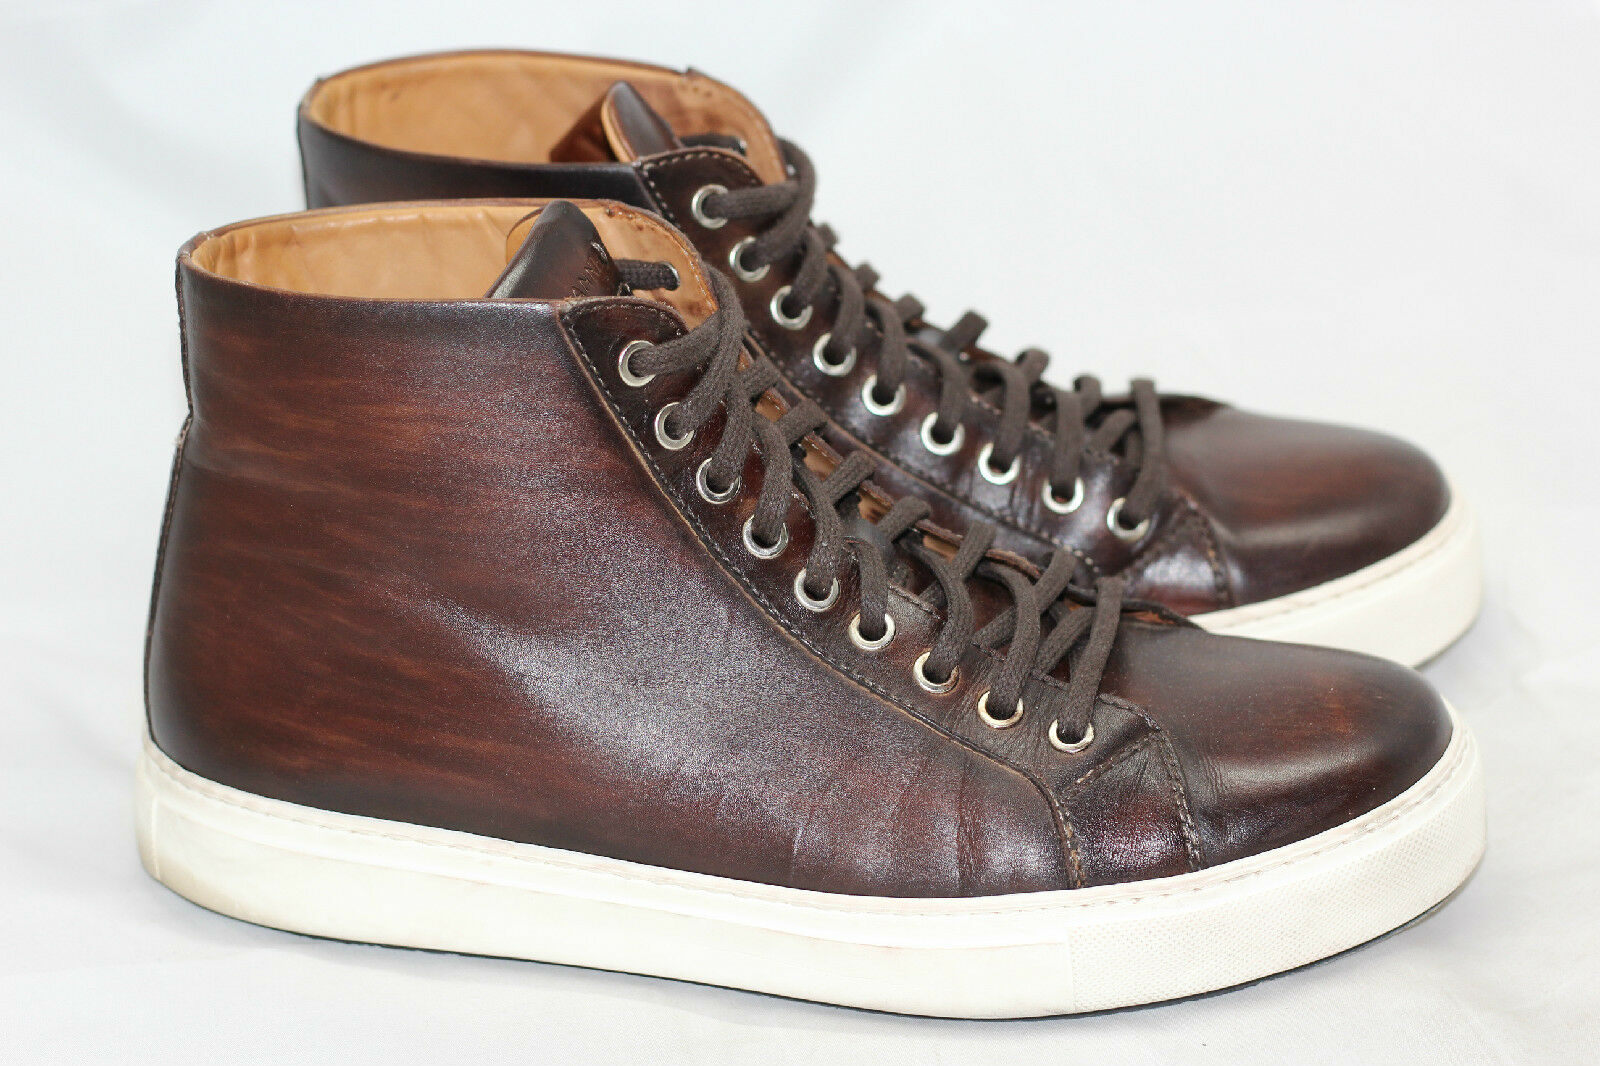 Mens Magnanni Brando High Top Sneakers Leather Lace Up - Mid Brown 9 M (G9)